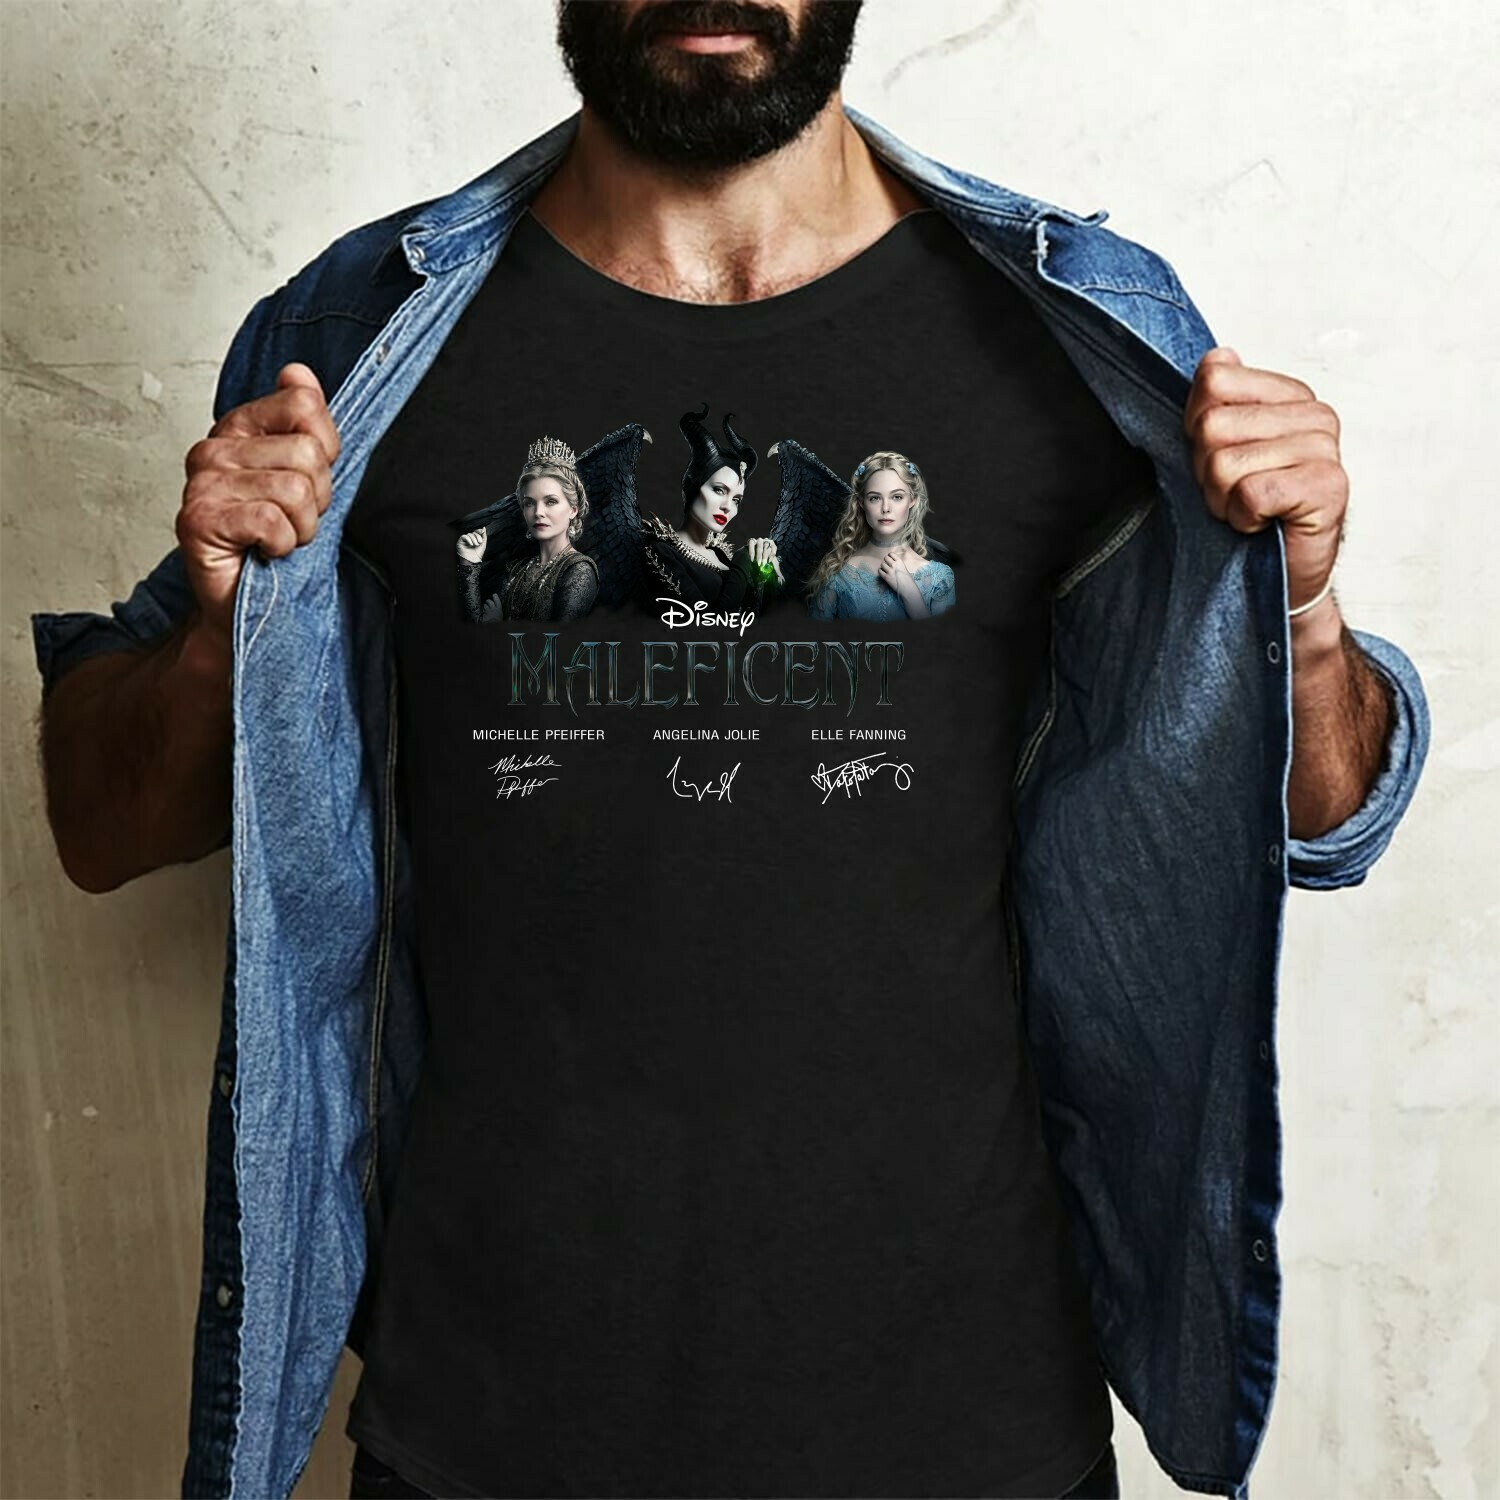 Maleficent Queen The Throne Is Mine Cosplay Game of Thrones Disney Villains Bad Girls Have More Fun Walt Disney World Family Vacation TShirt Long Sleeve Sweatshirt Hoodie Jolly Family Gifts